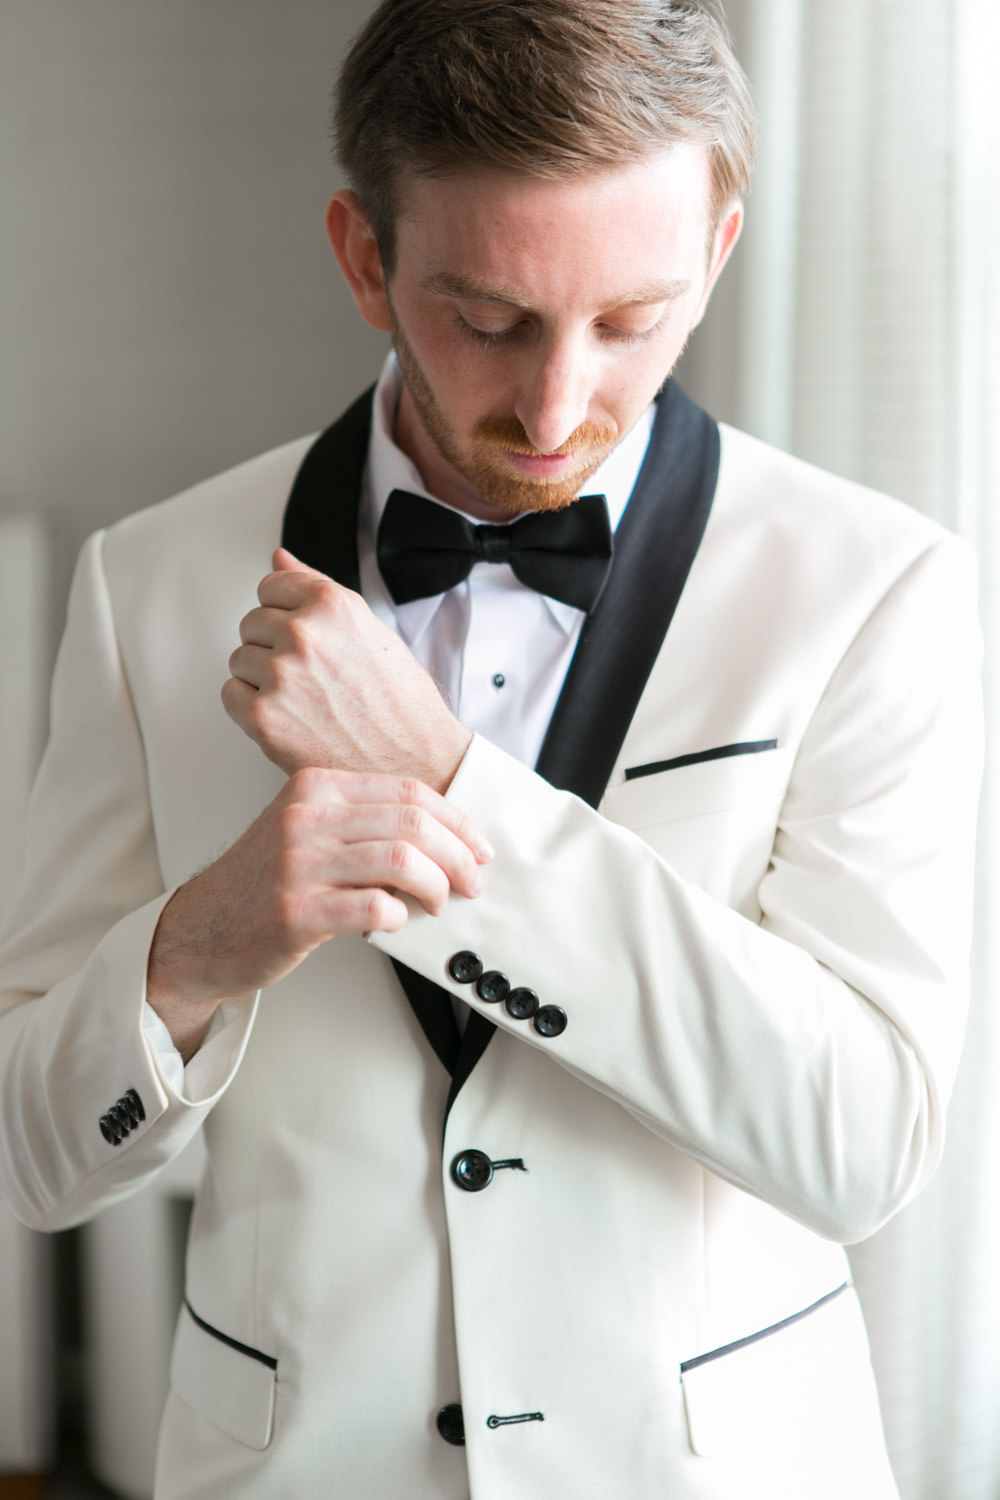 Candid wedding photo of the groom getting his cufflinks on, Hotel del Coronado wedding, Cavin Elizabeth Photography